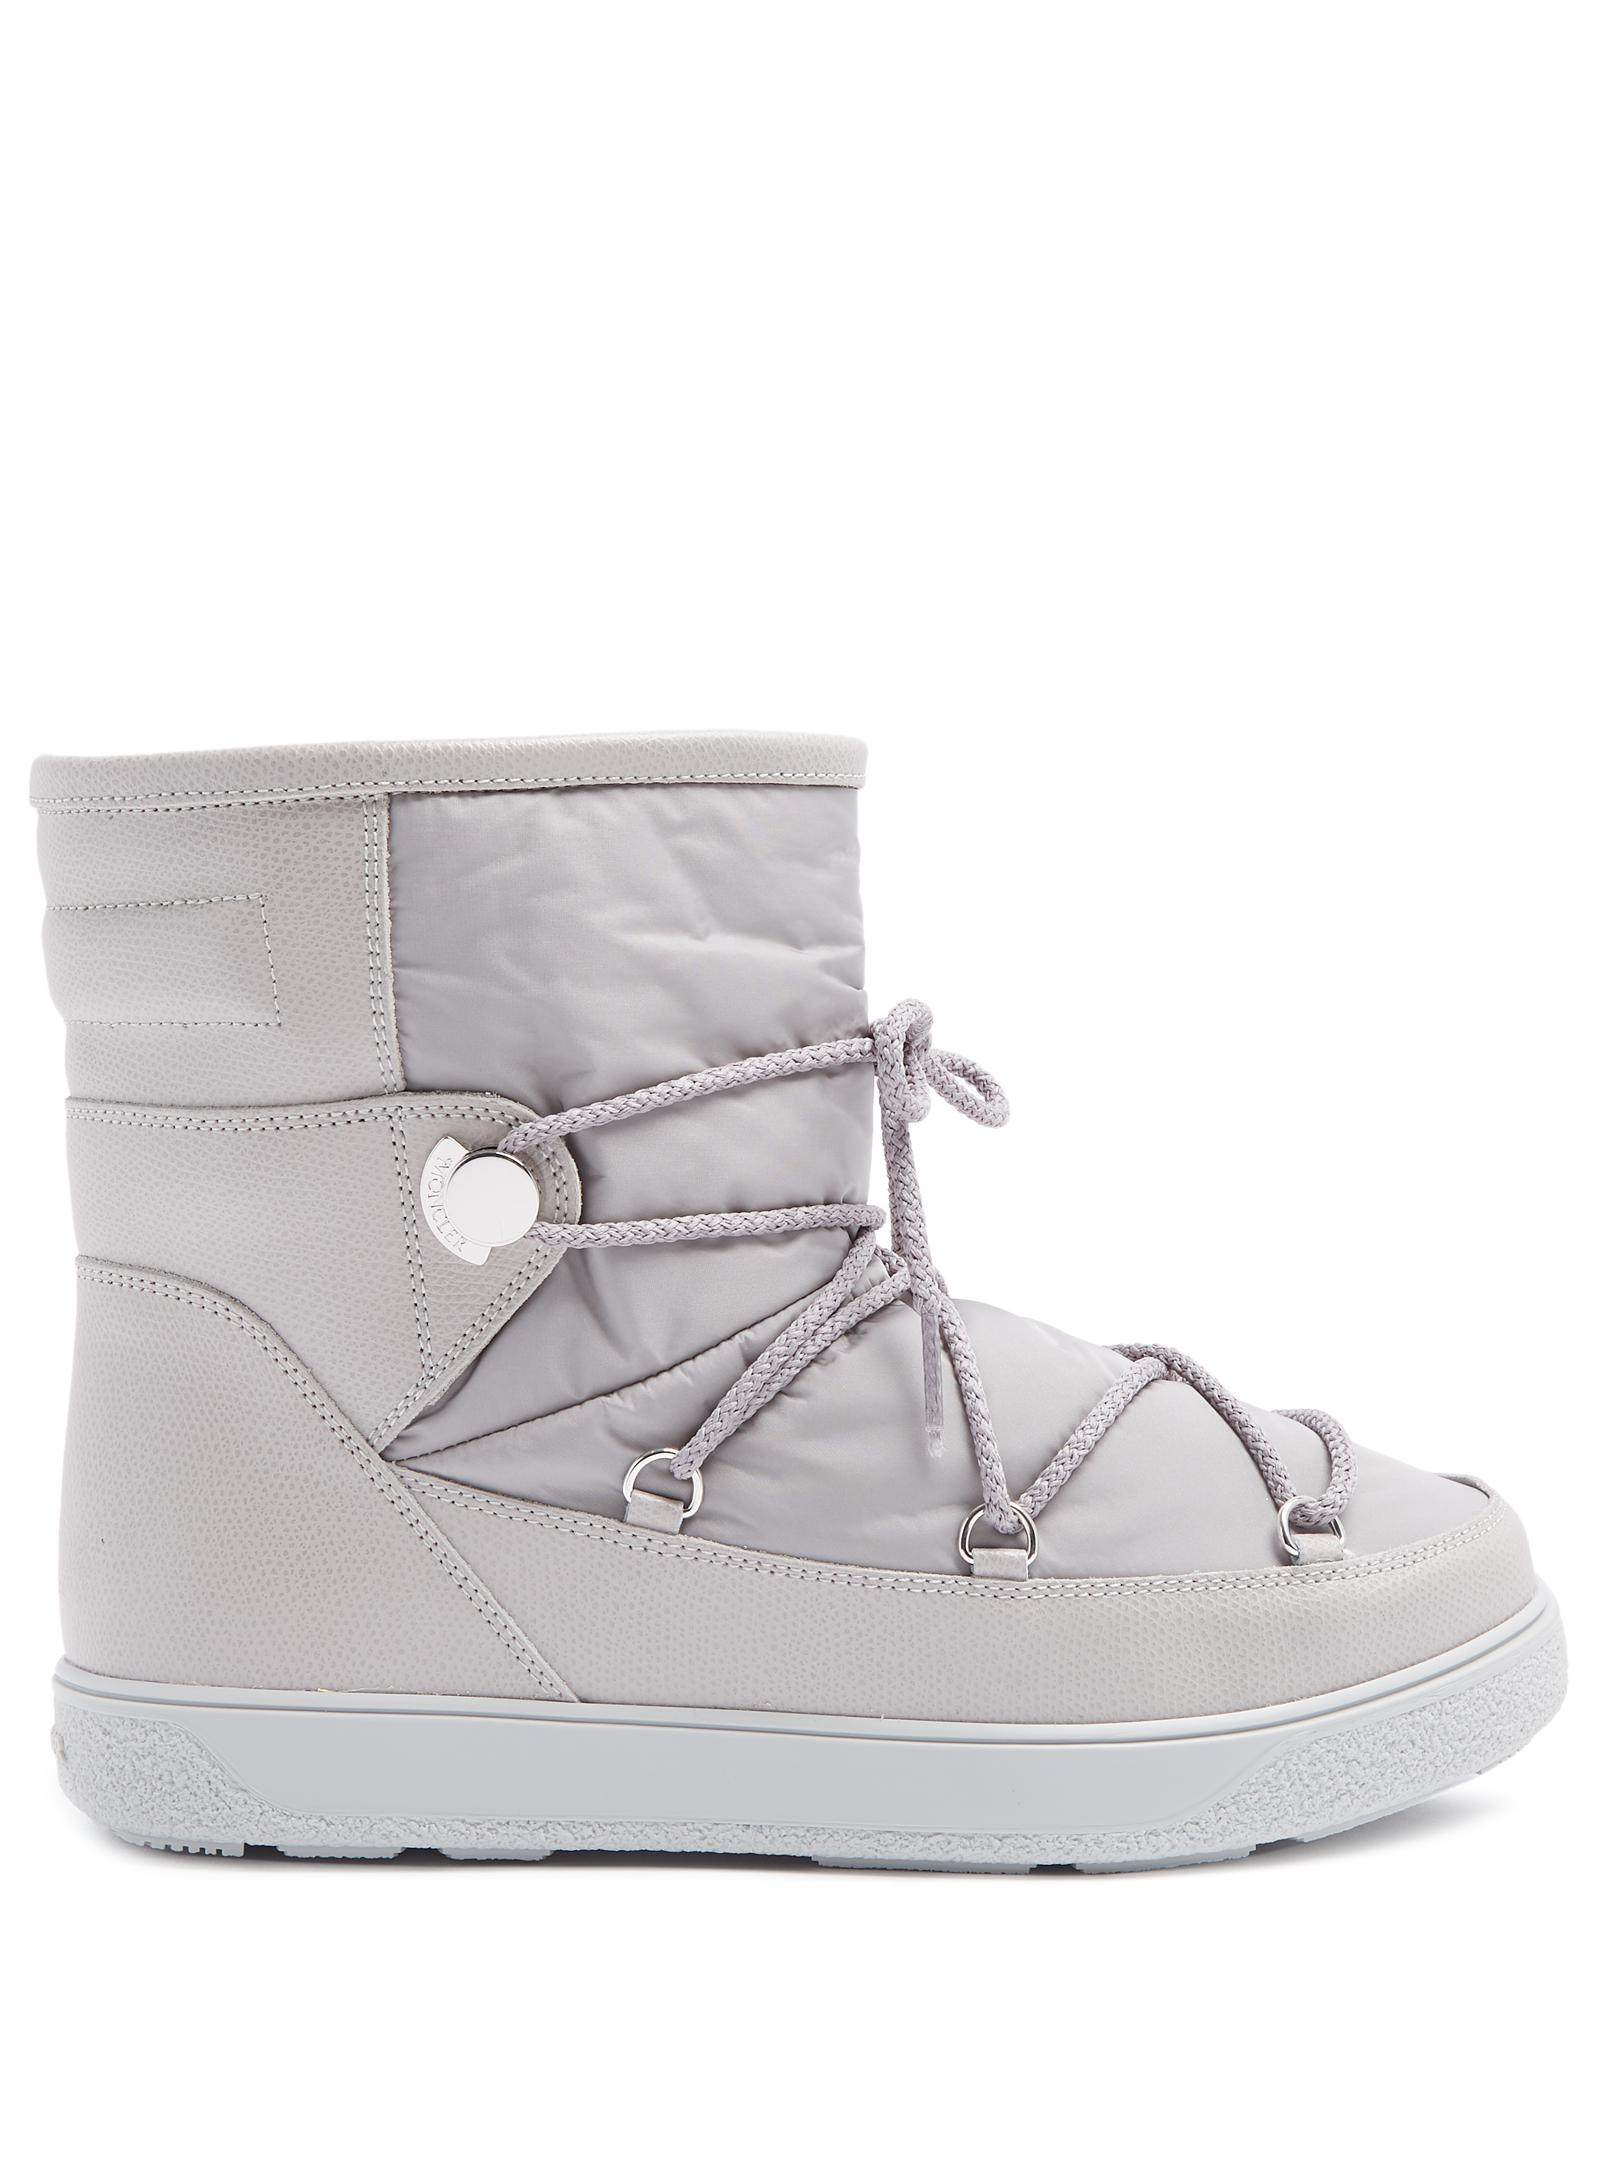 55d64d526 Lyst - Moncler New Fanny Nylon And Leather Aprés-ski Boots in Gray